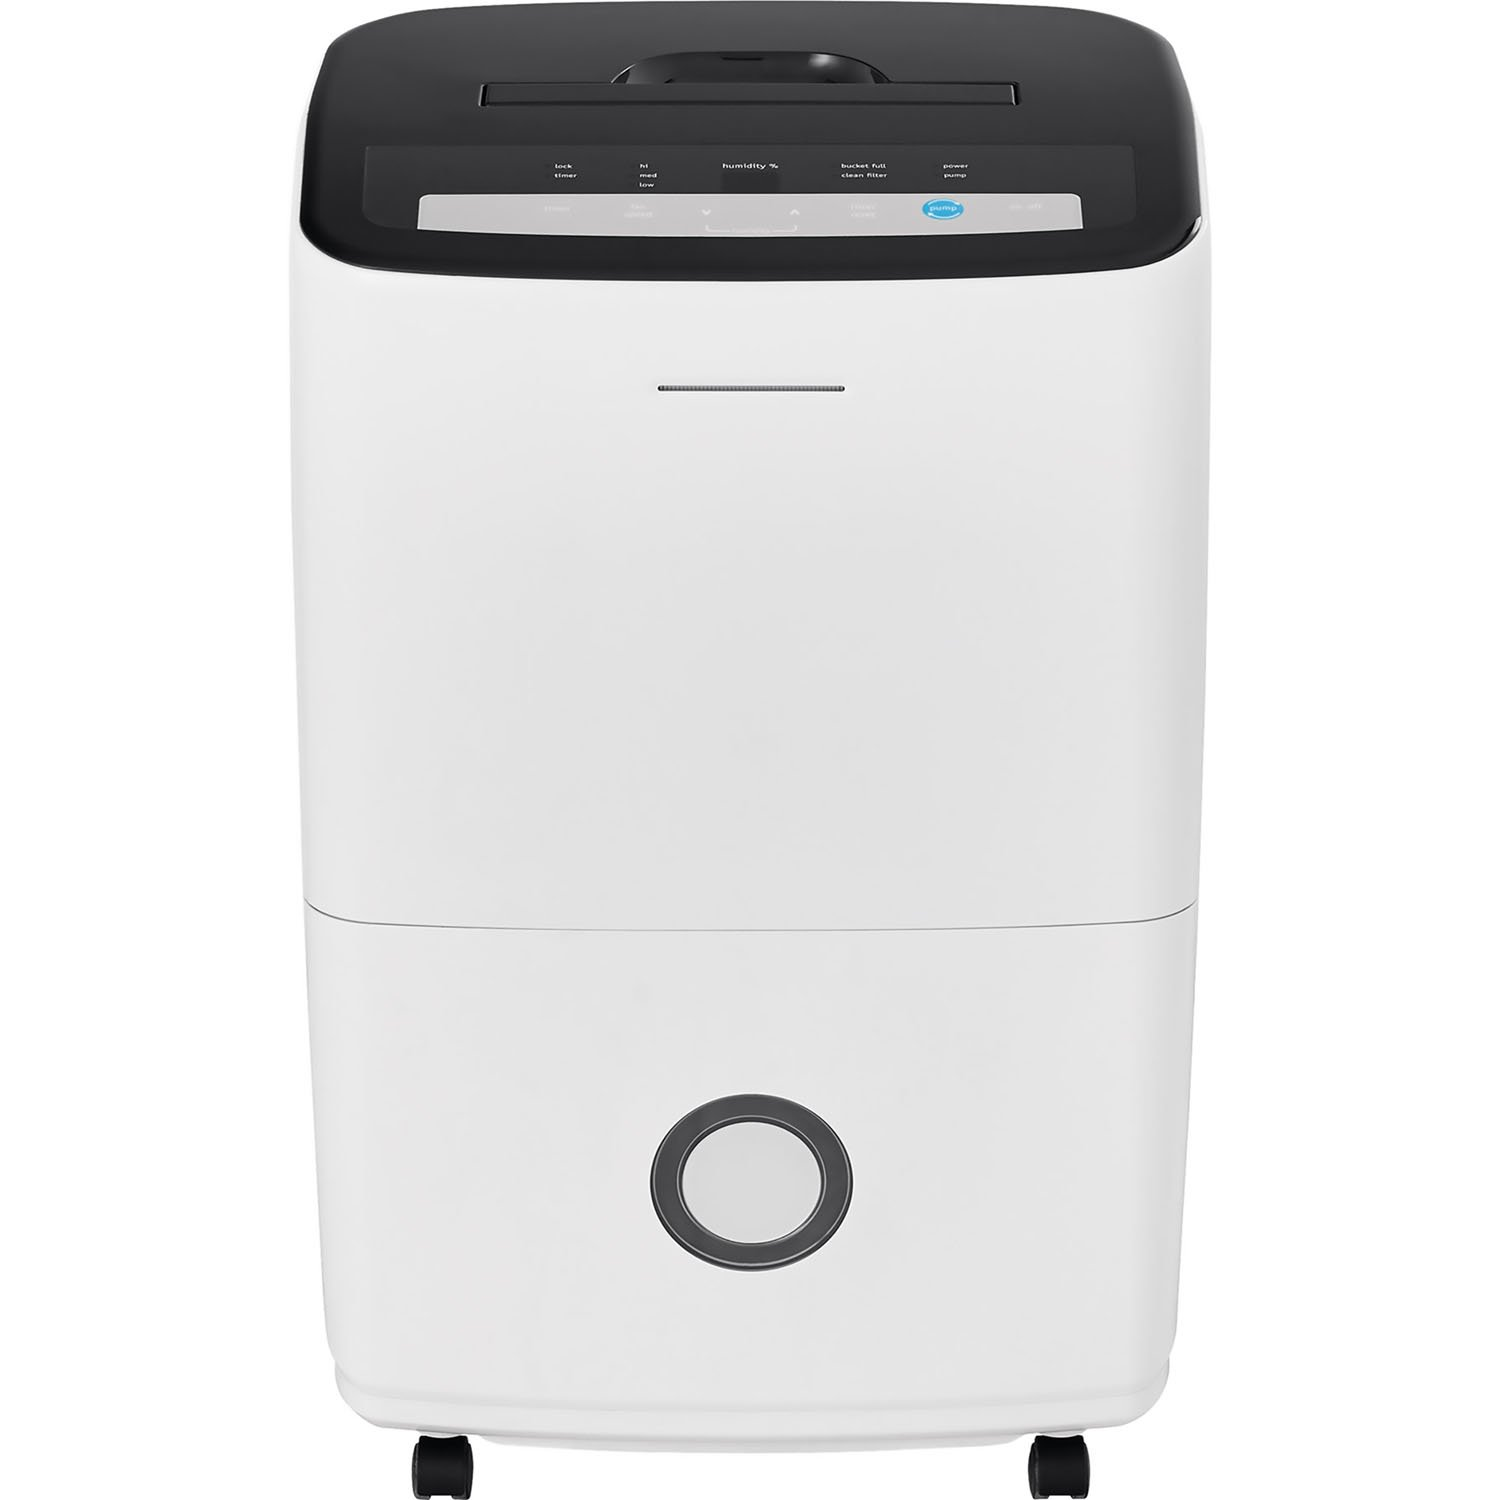 FRIGIDAIRE FFAP7033T1 70 13.1-Pint Bucket Capacity, Mesh Filter and Effortless Humidity Control Dehumidifier with Built-in Pump in White,